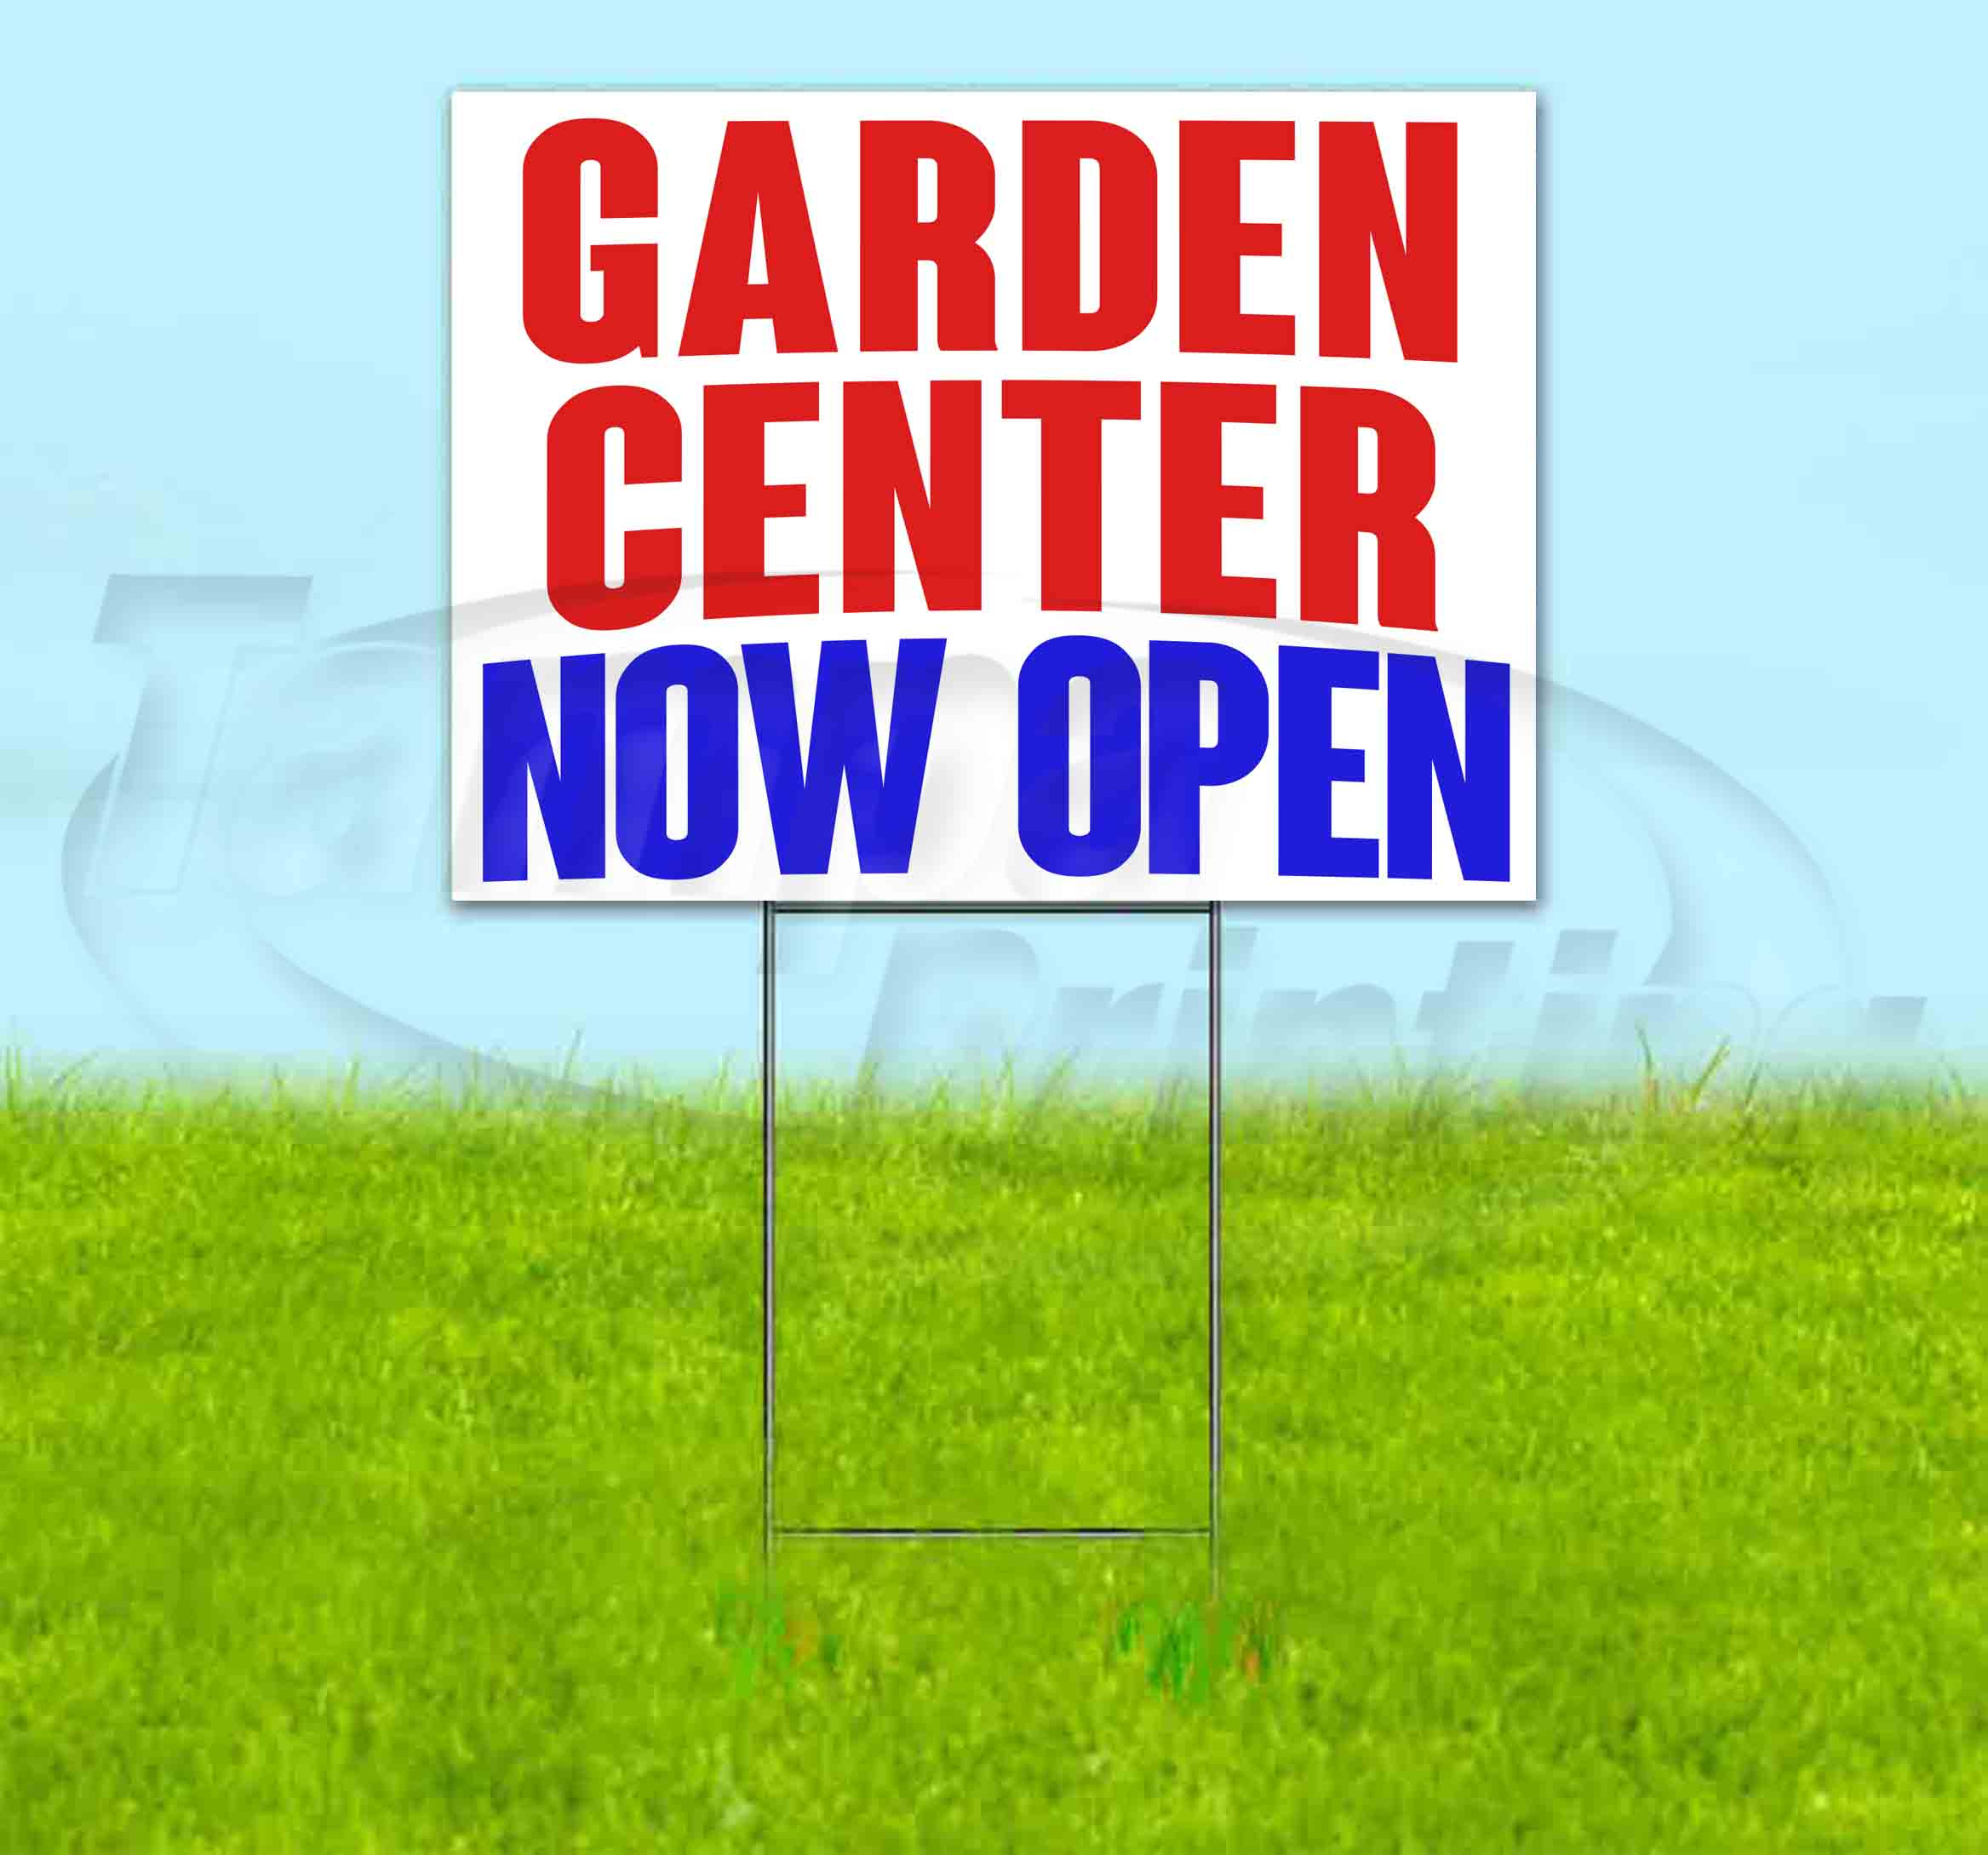 New Lawn Bandit USA Advertising Corrugated Plastic Yard Sign 18x24 Decorations Now Open Under New Management Custom